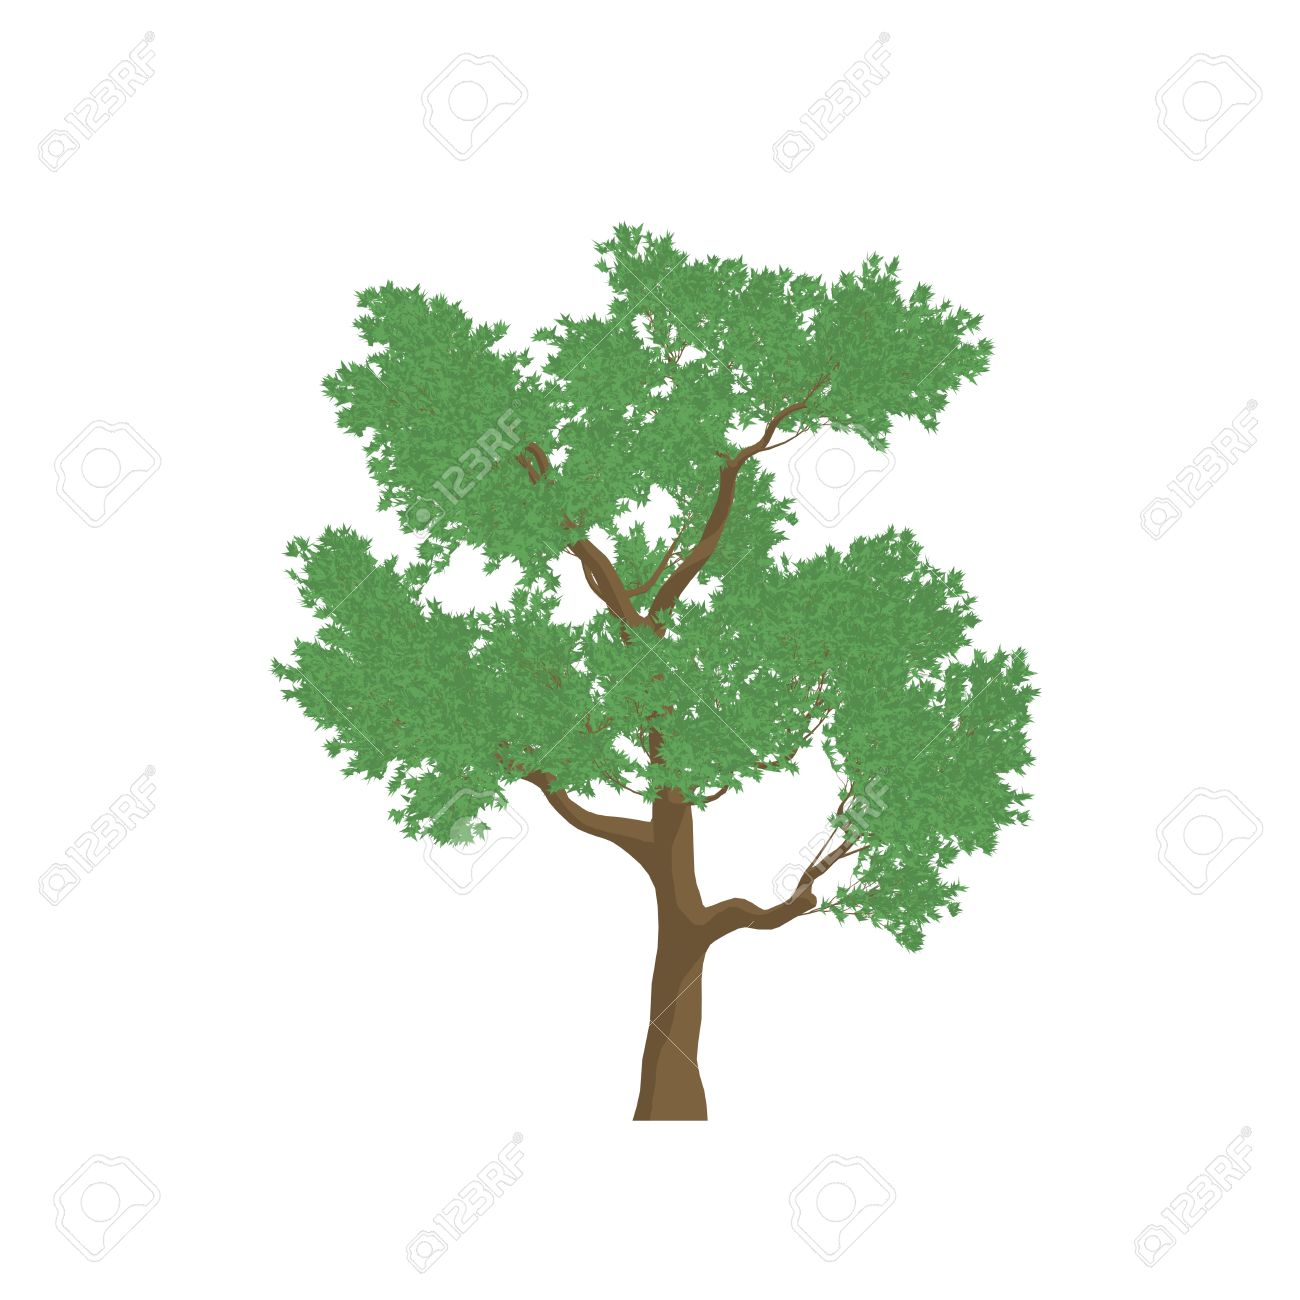 Eucalyptus Tree Cartoon Shaded Isolated In White Background Stock Photo Picture And Royalty Free Image Image 31078423 Find this pin and more on 3d object sketch by deretor. eucalyptus tree cartoon shaded isolated in white background